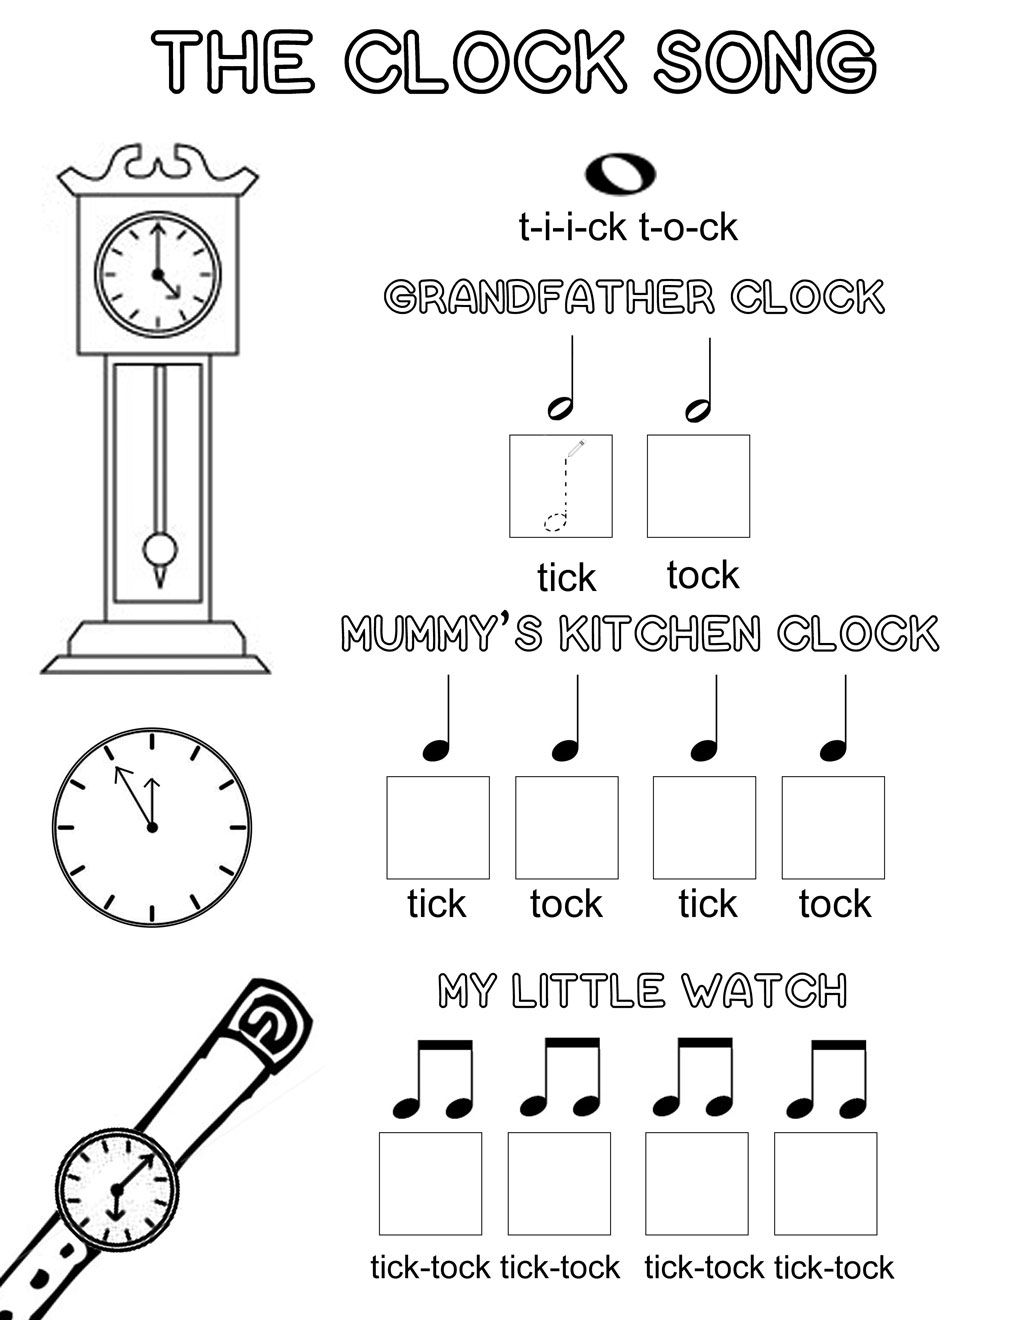 Uncategorized Note Values Worksheet the clock song an easy way to learn musical note values change whole bong lets play music free theory worksheet a fun teach kids note